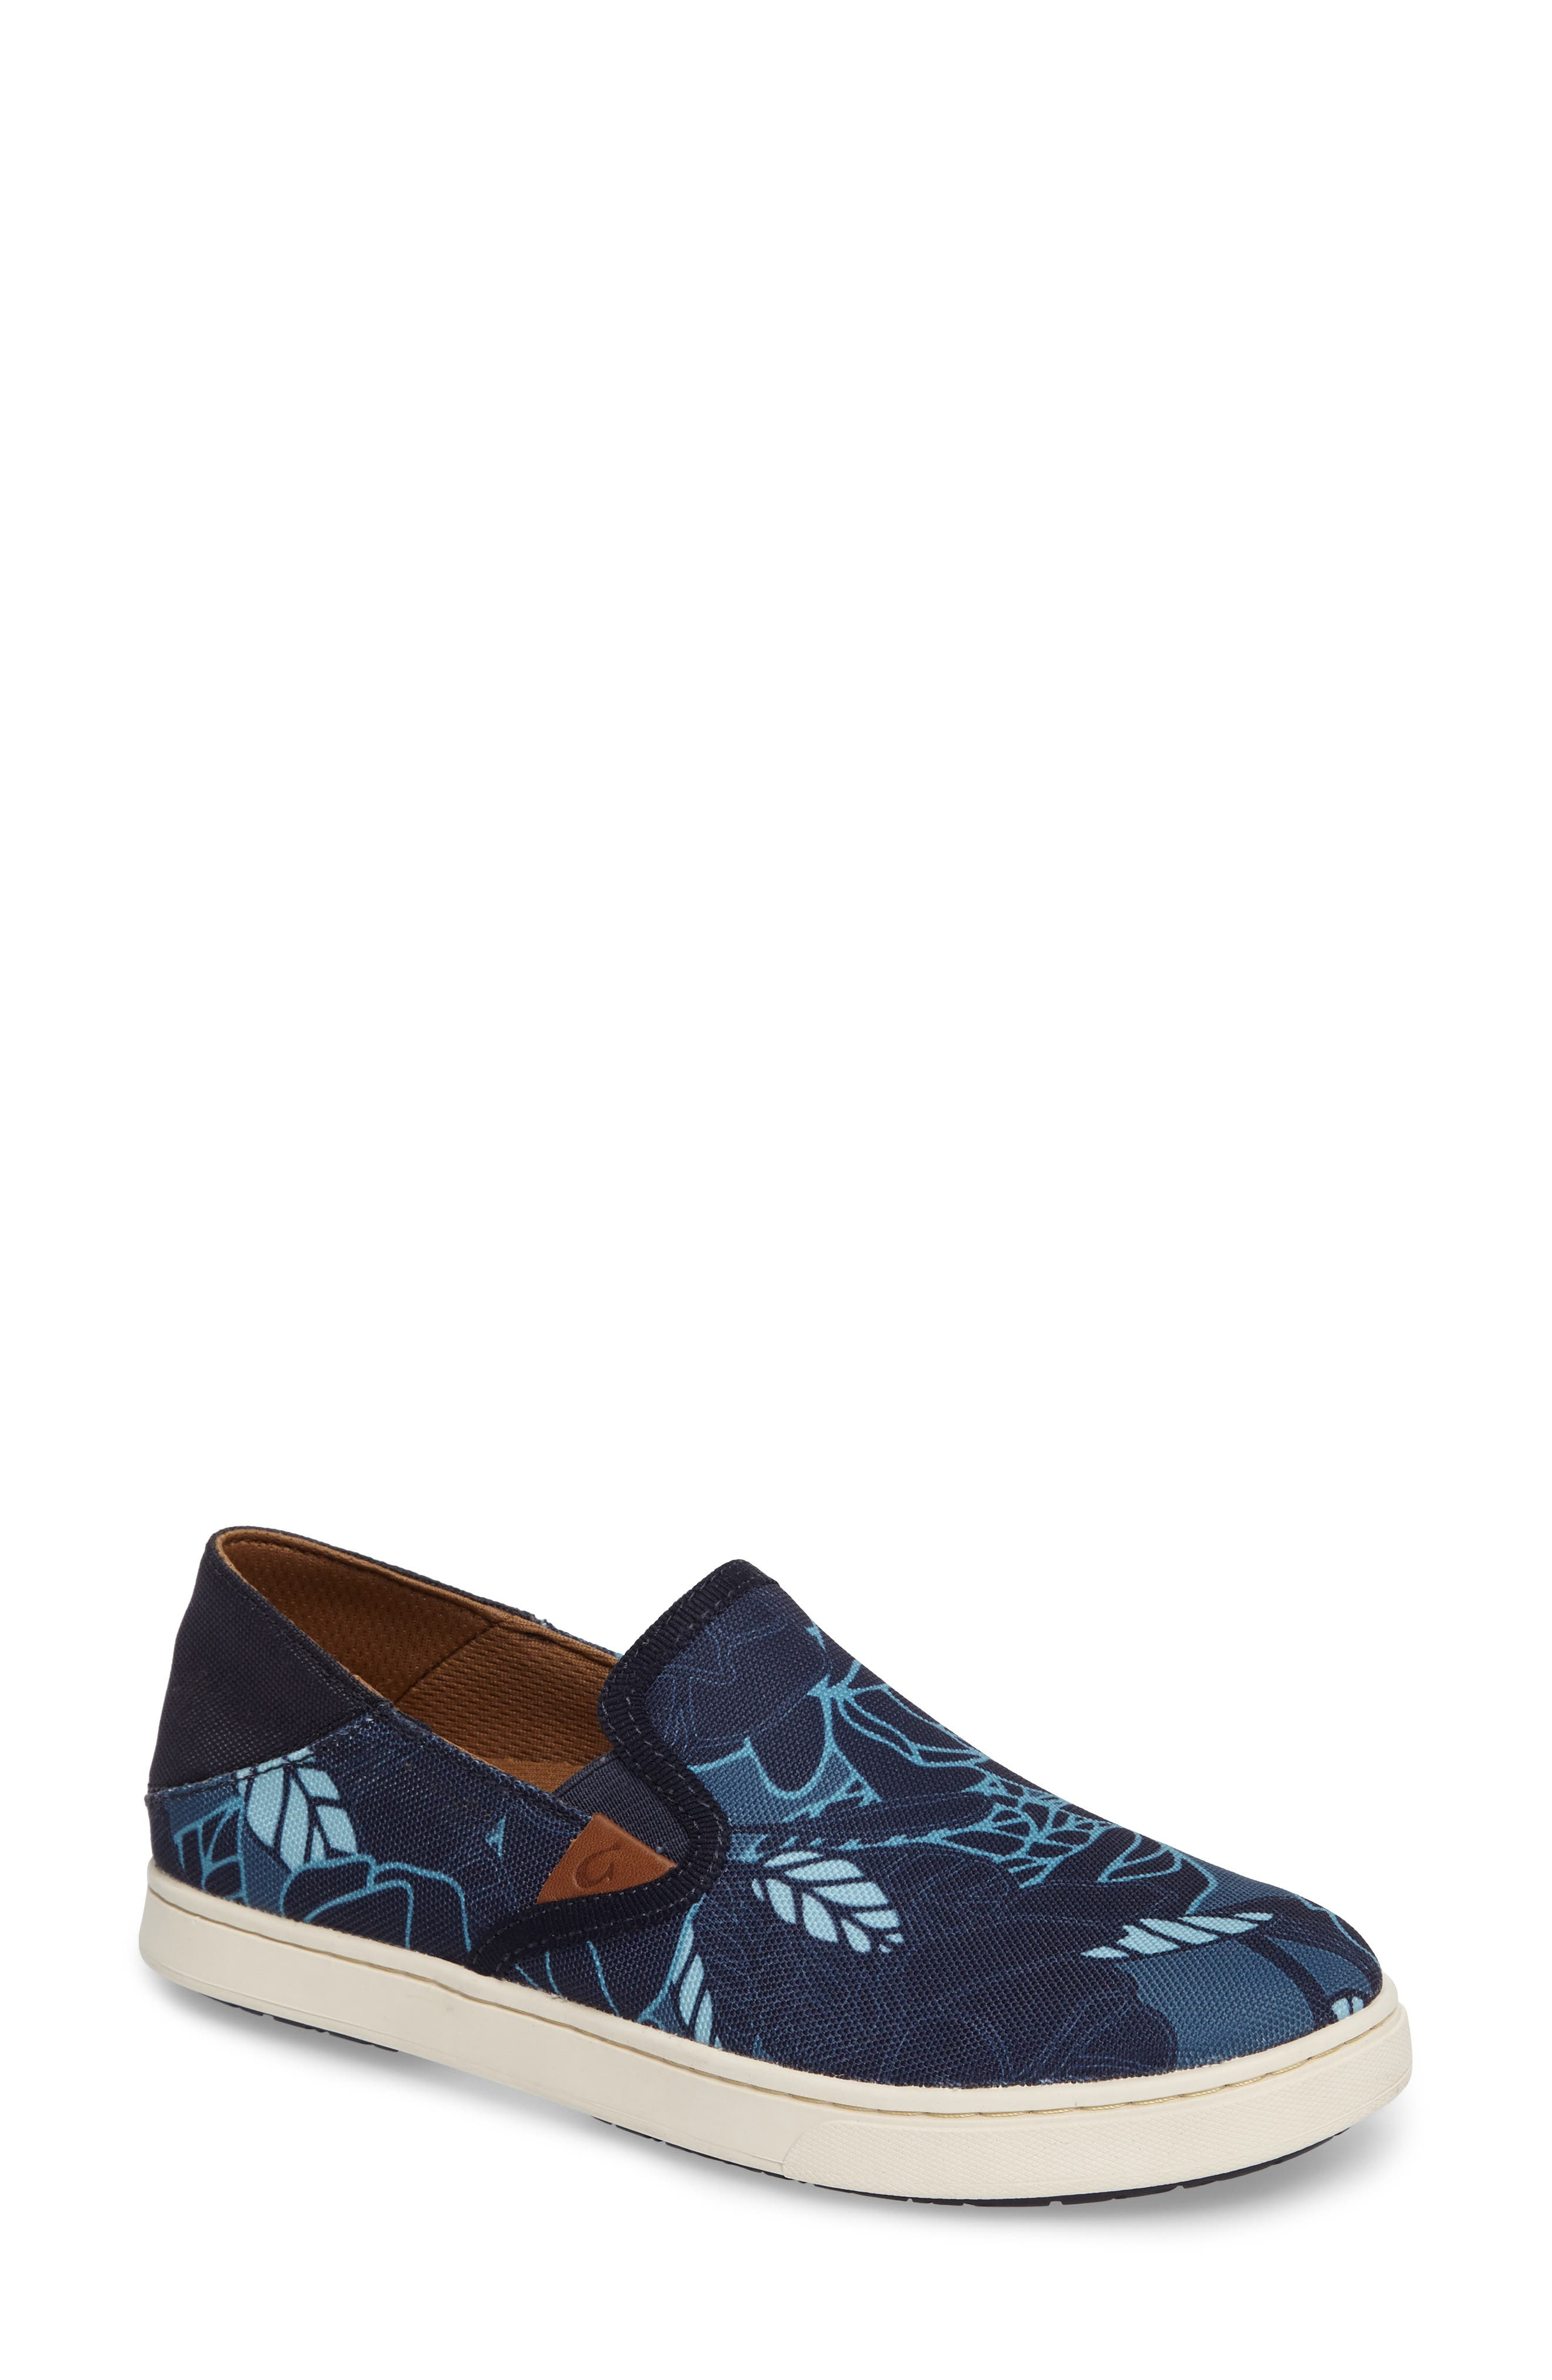 Pehuea Print Slip-On Sneaker,                         Main,                         color, Trench Blue/ Stormy Blue